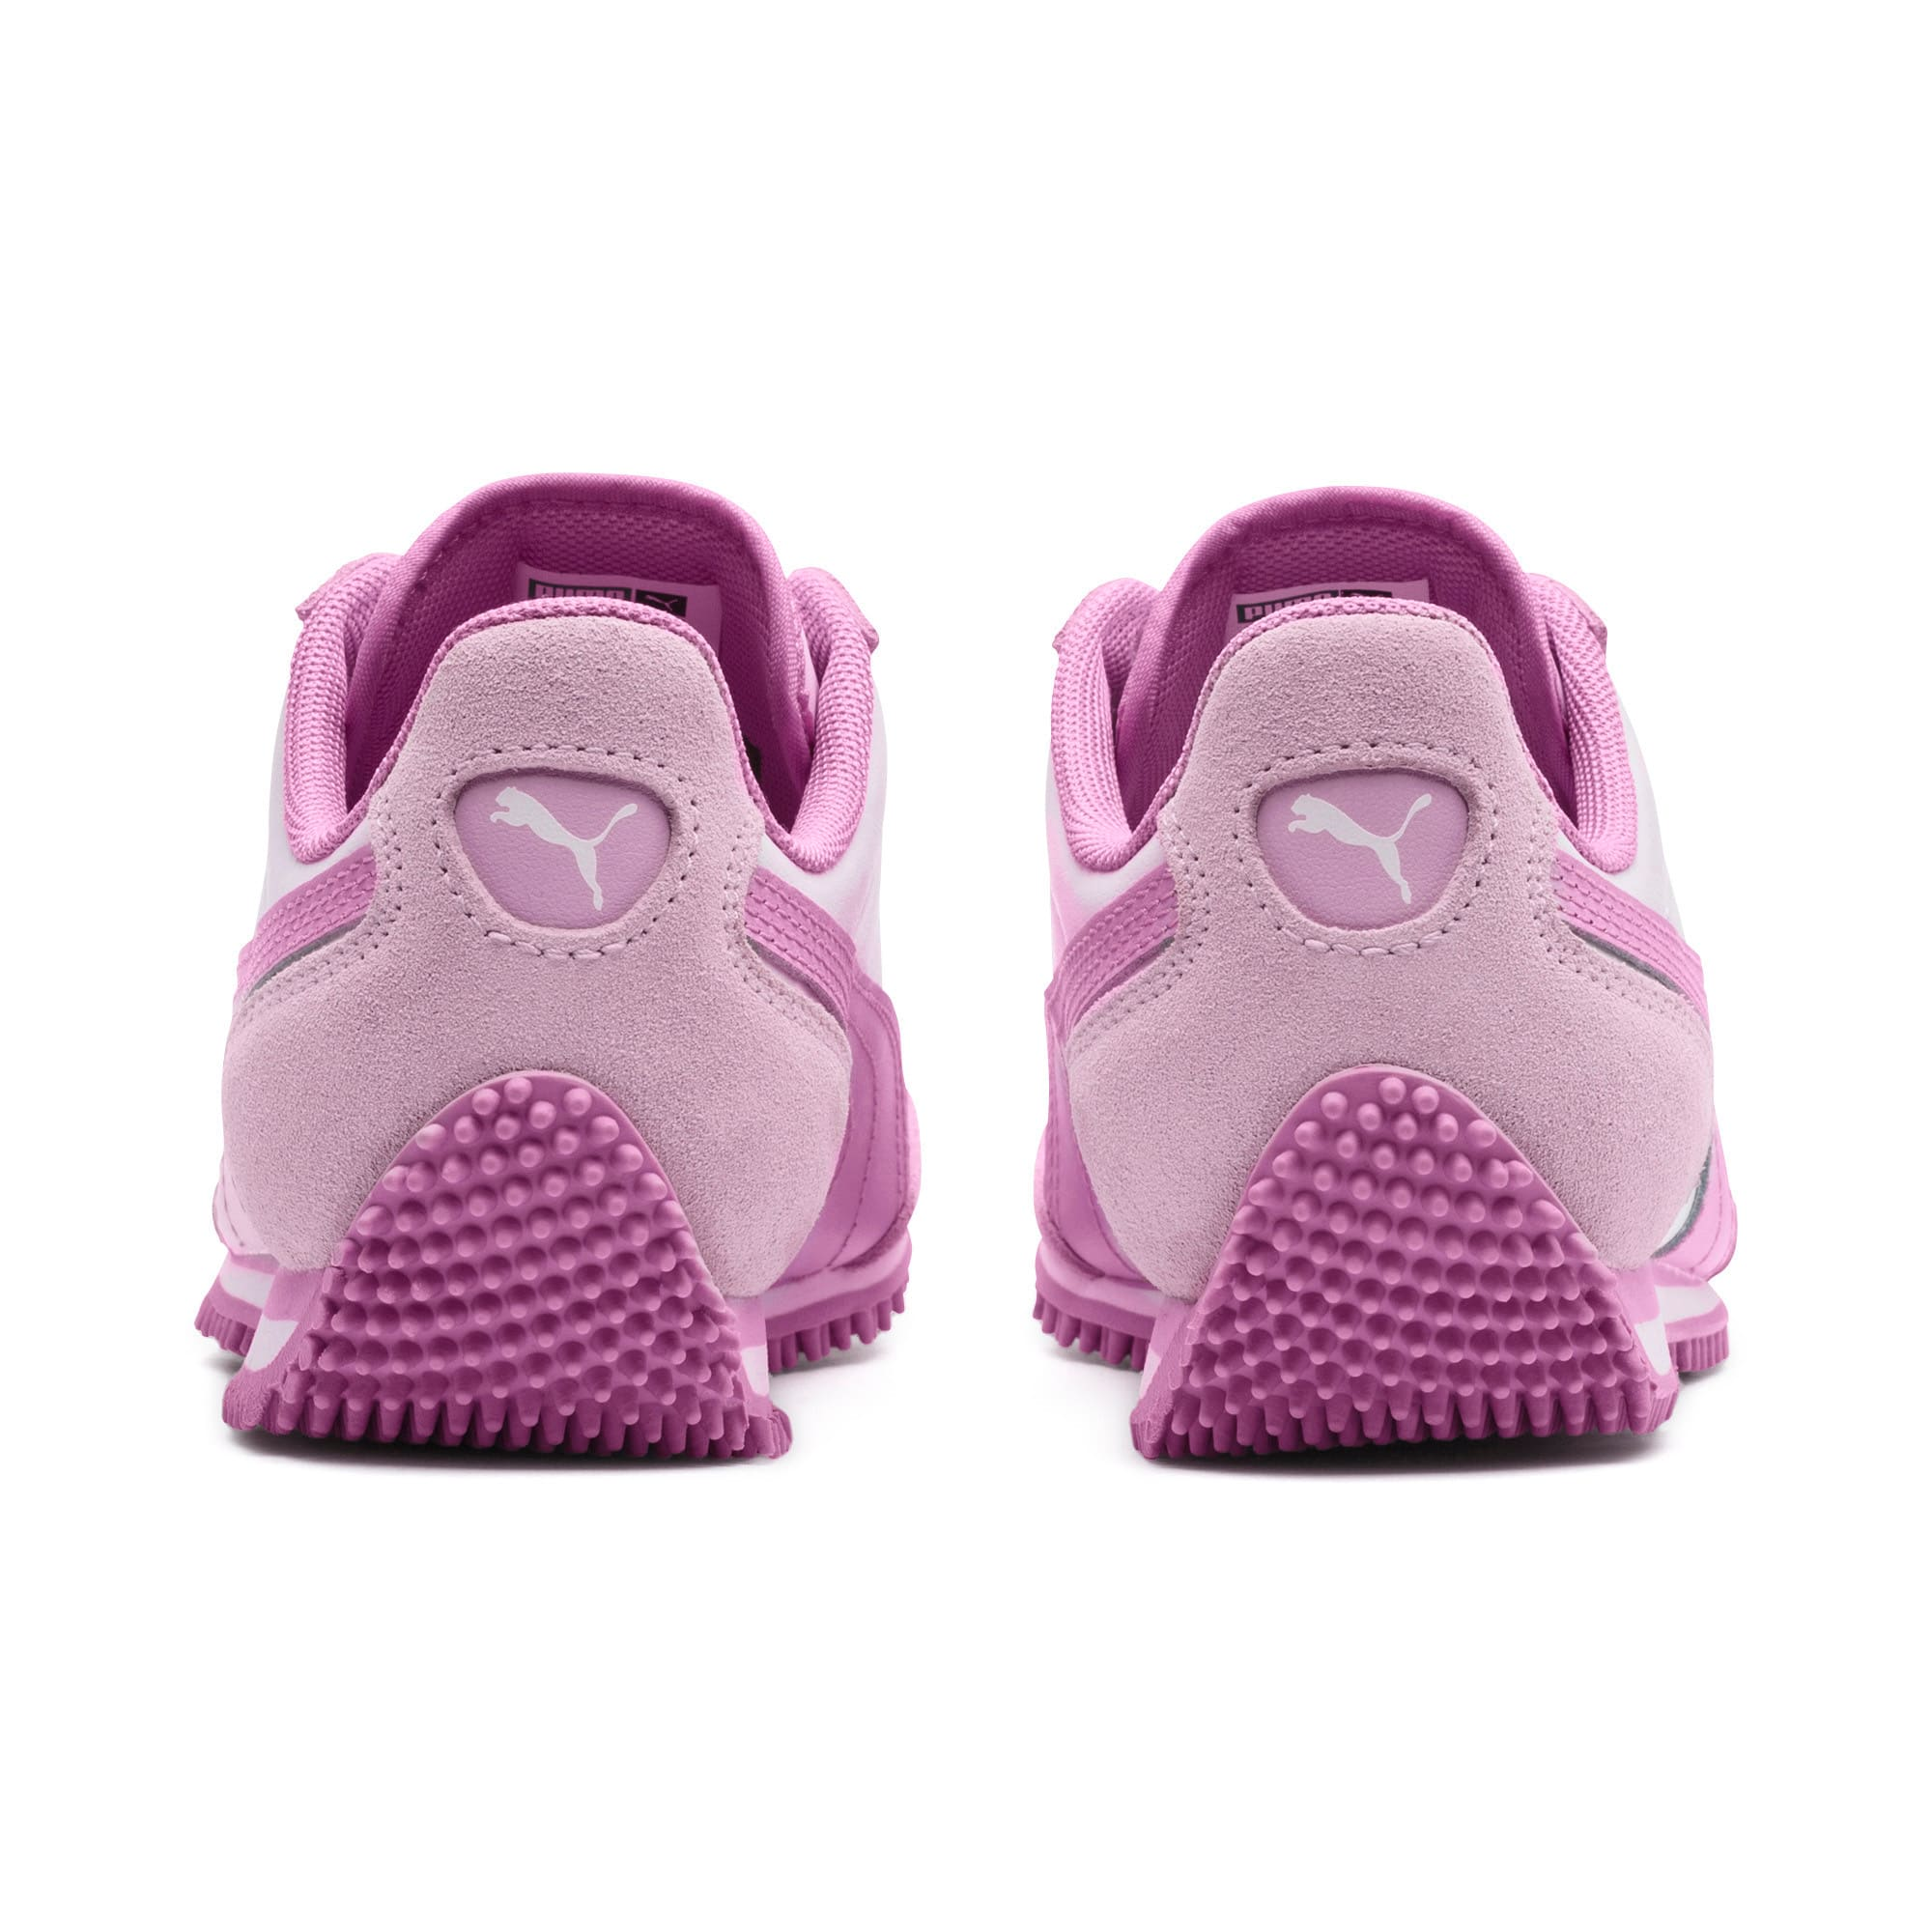 Thumbnail 3 of Kid's Whirlwind Trainers, Puma White-Winsome Orchid, medium-IND